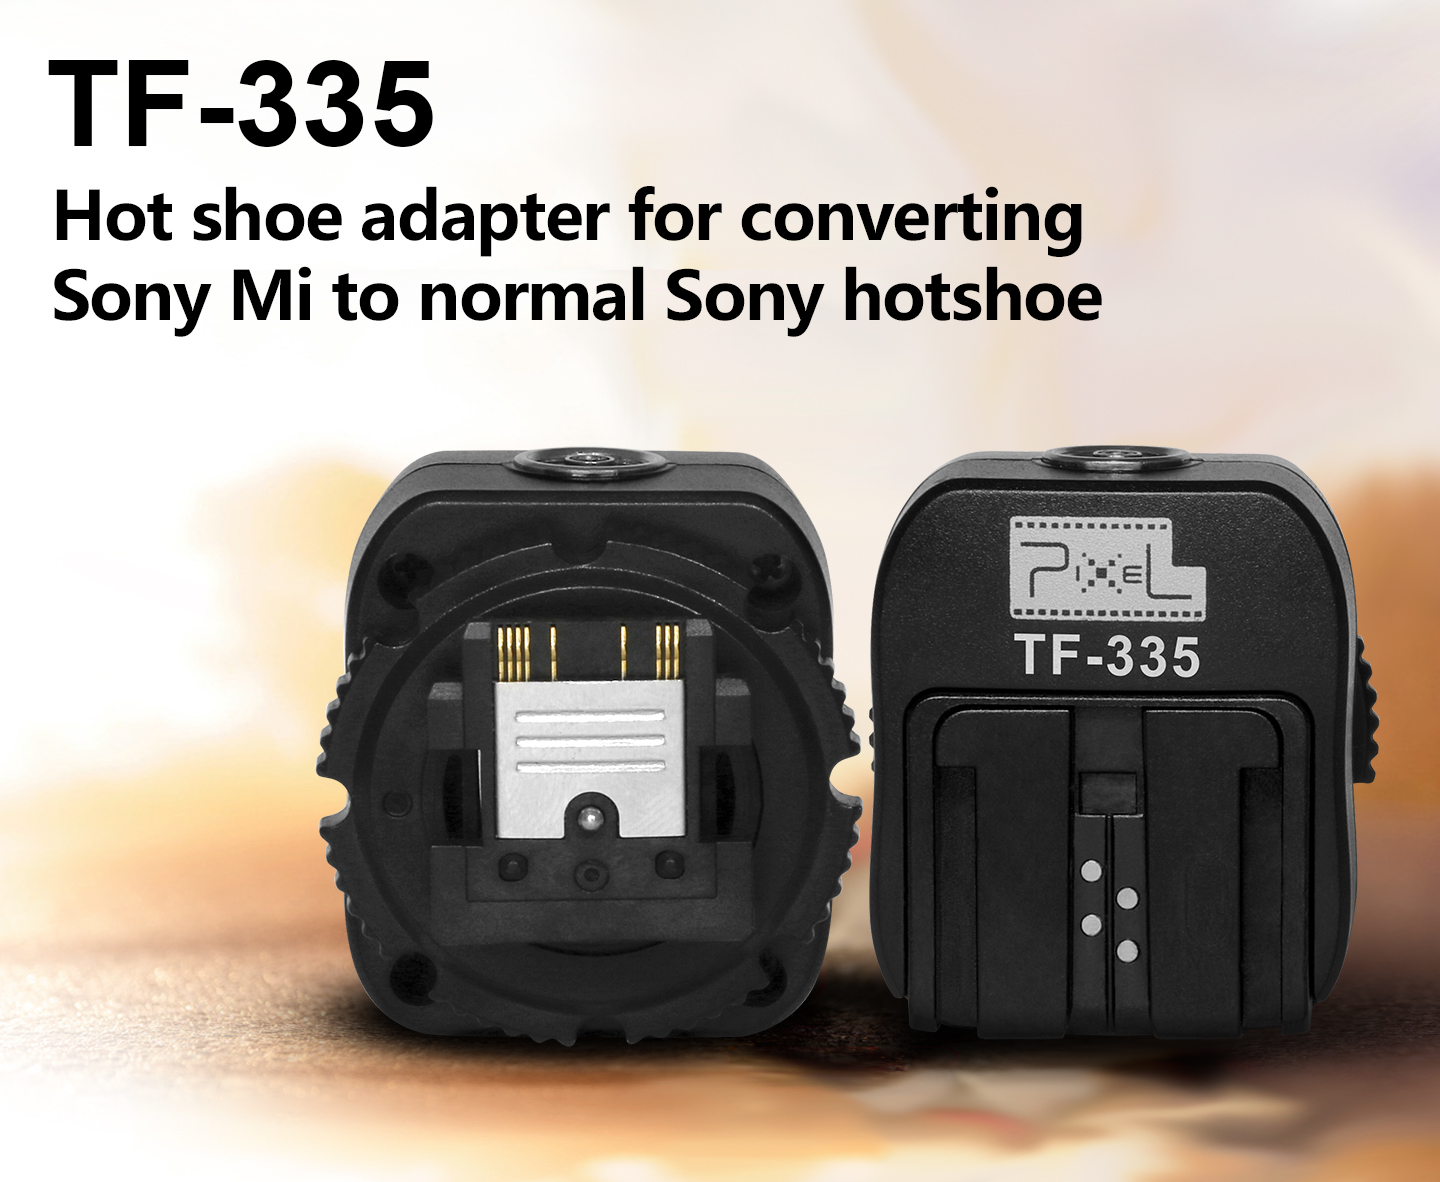 TF-335 Hot shoe adapter for converting